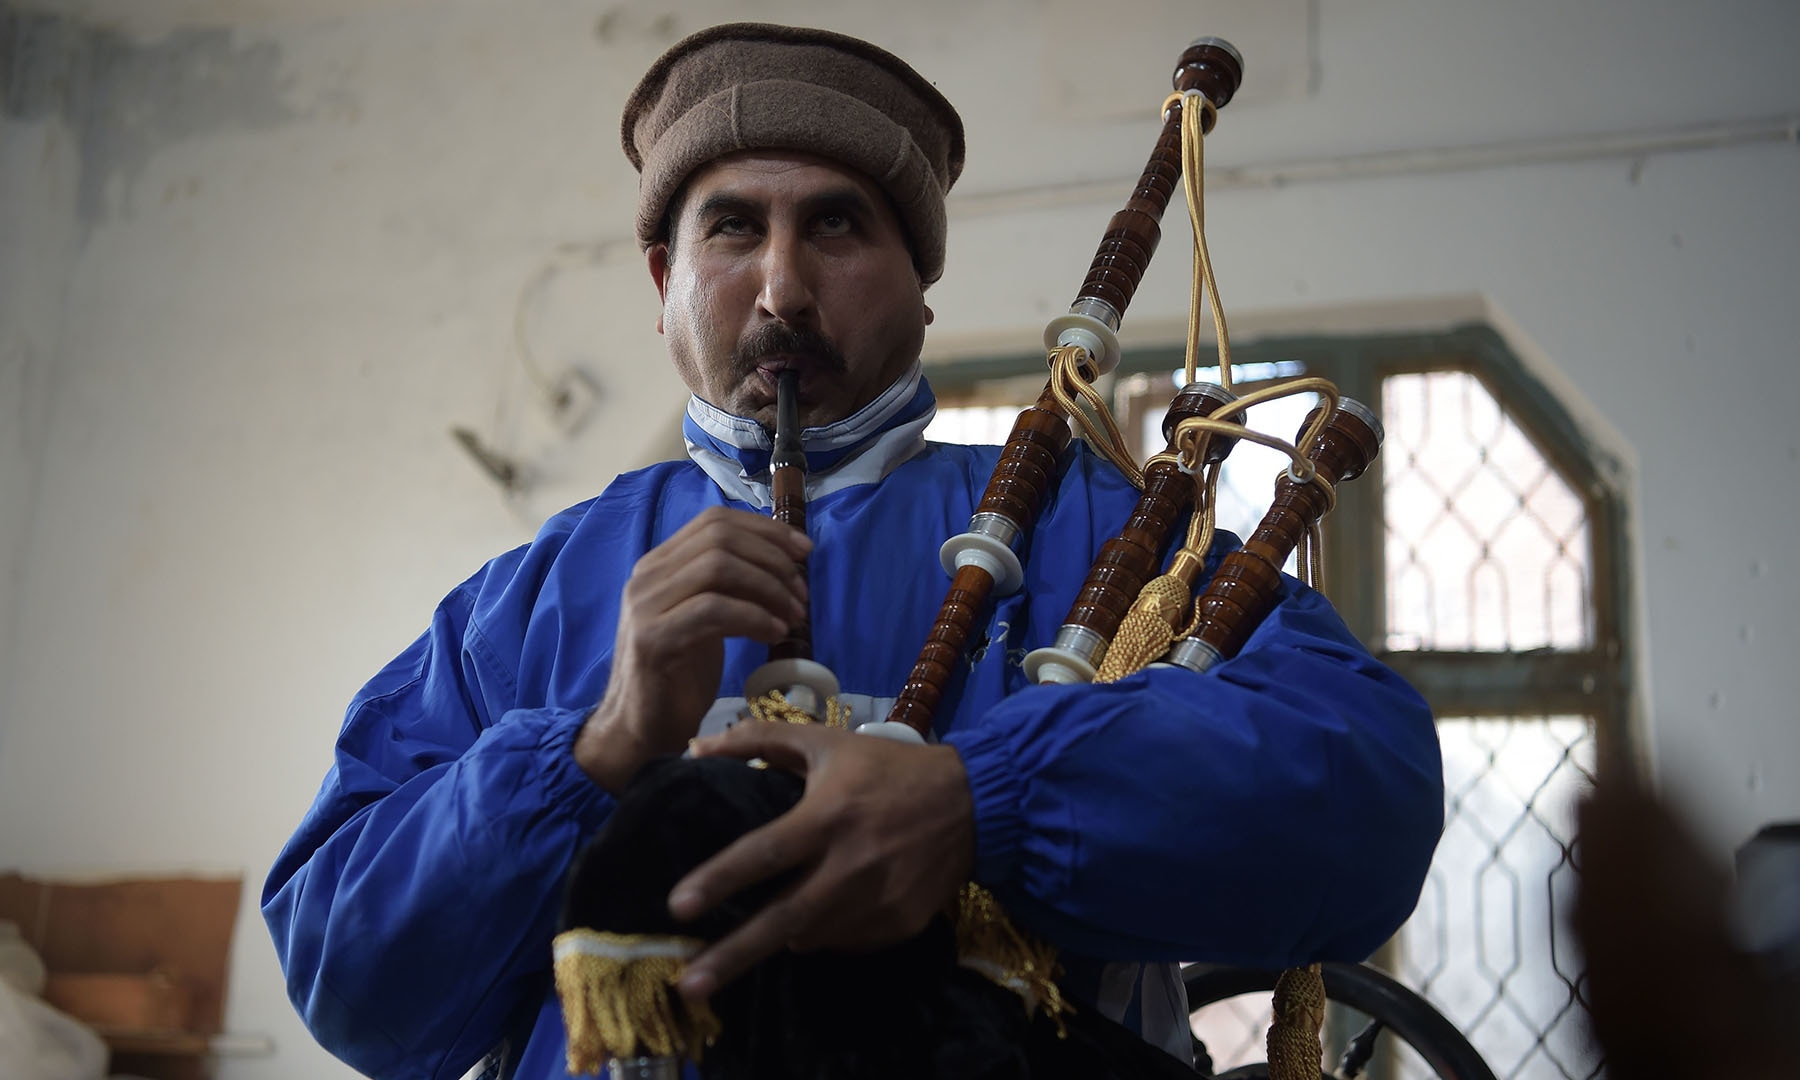 In this picture taken on January 25, a worker plays and tests a set of bagpipes at the Mid East bagpipe factory in  Sialkot.  — AFP